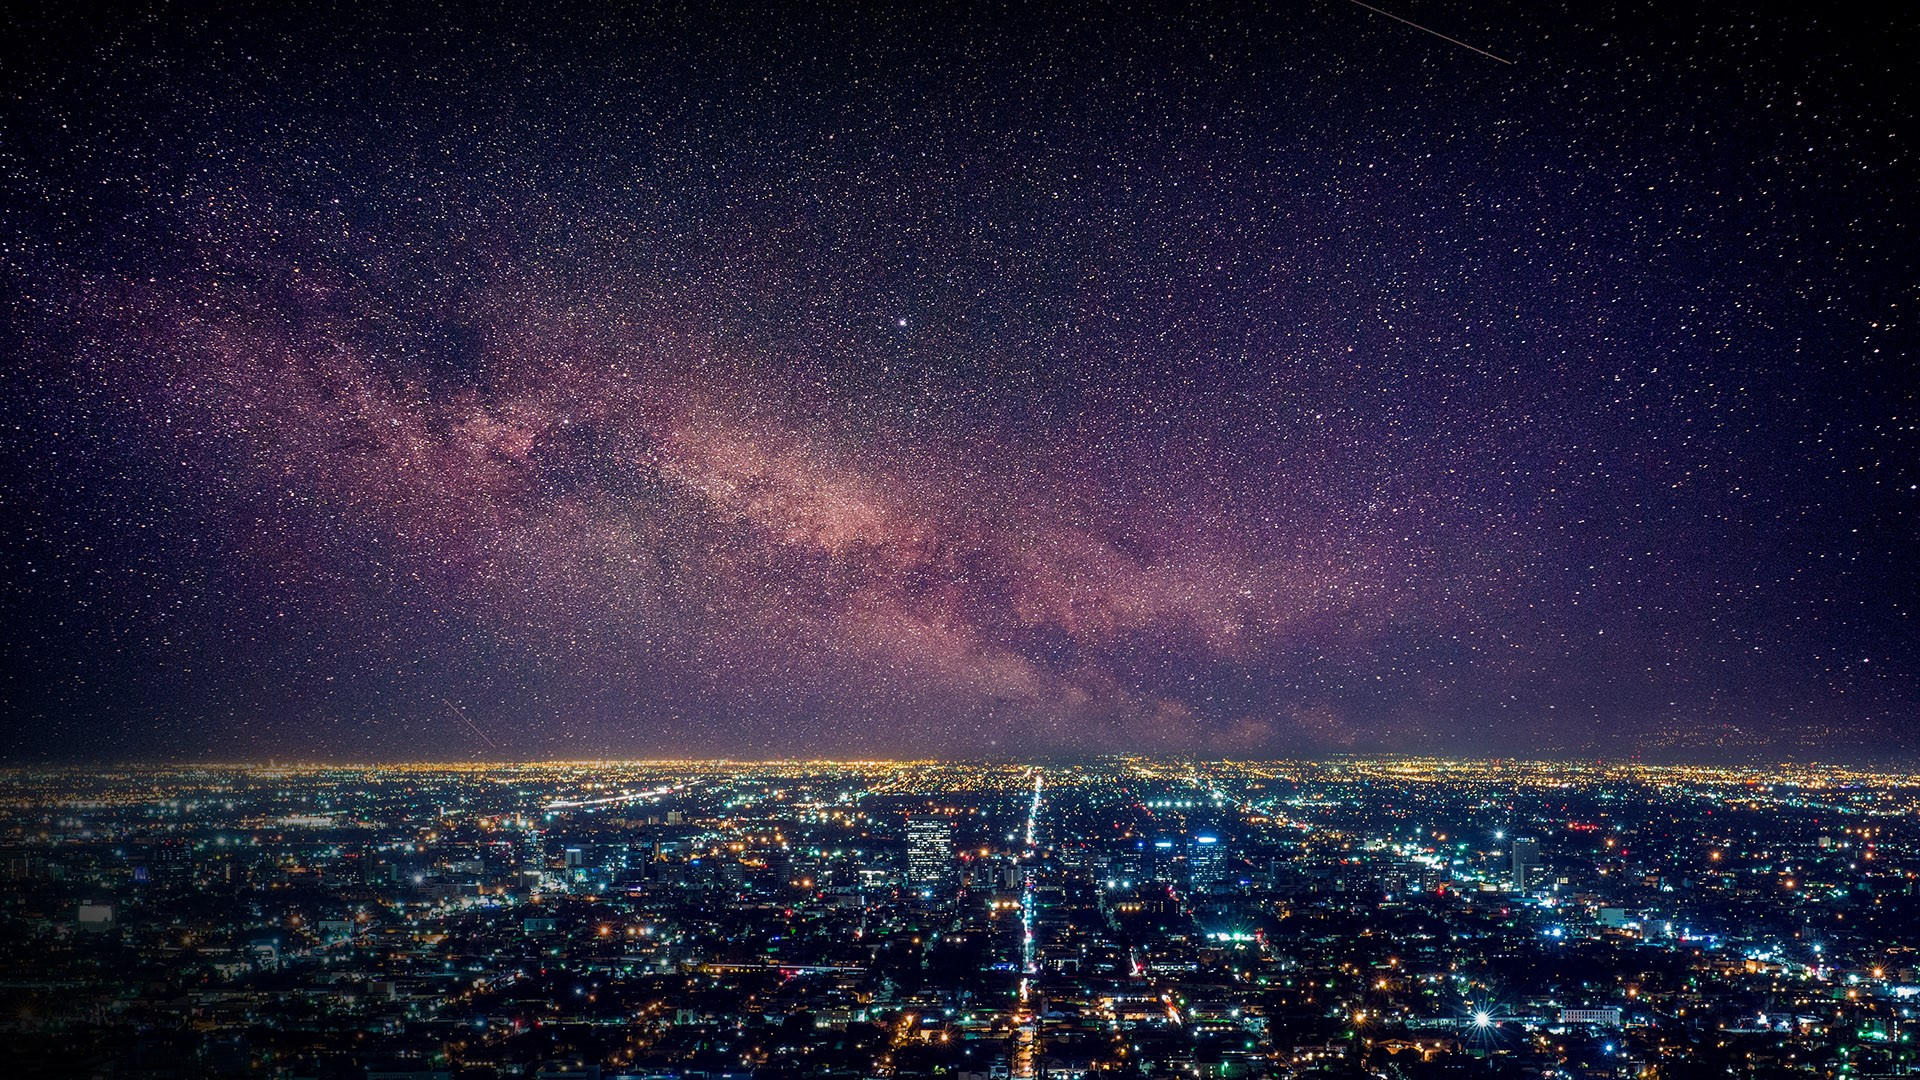 General 1920x1080 aerial view drone photo nature landscape stars galaxy Milky Way shooting stars house city lights road cityscape Los Angeles California USA